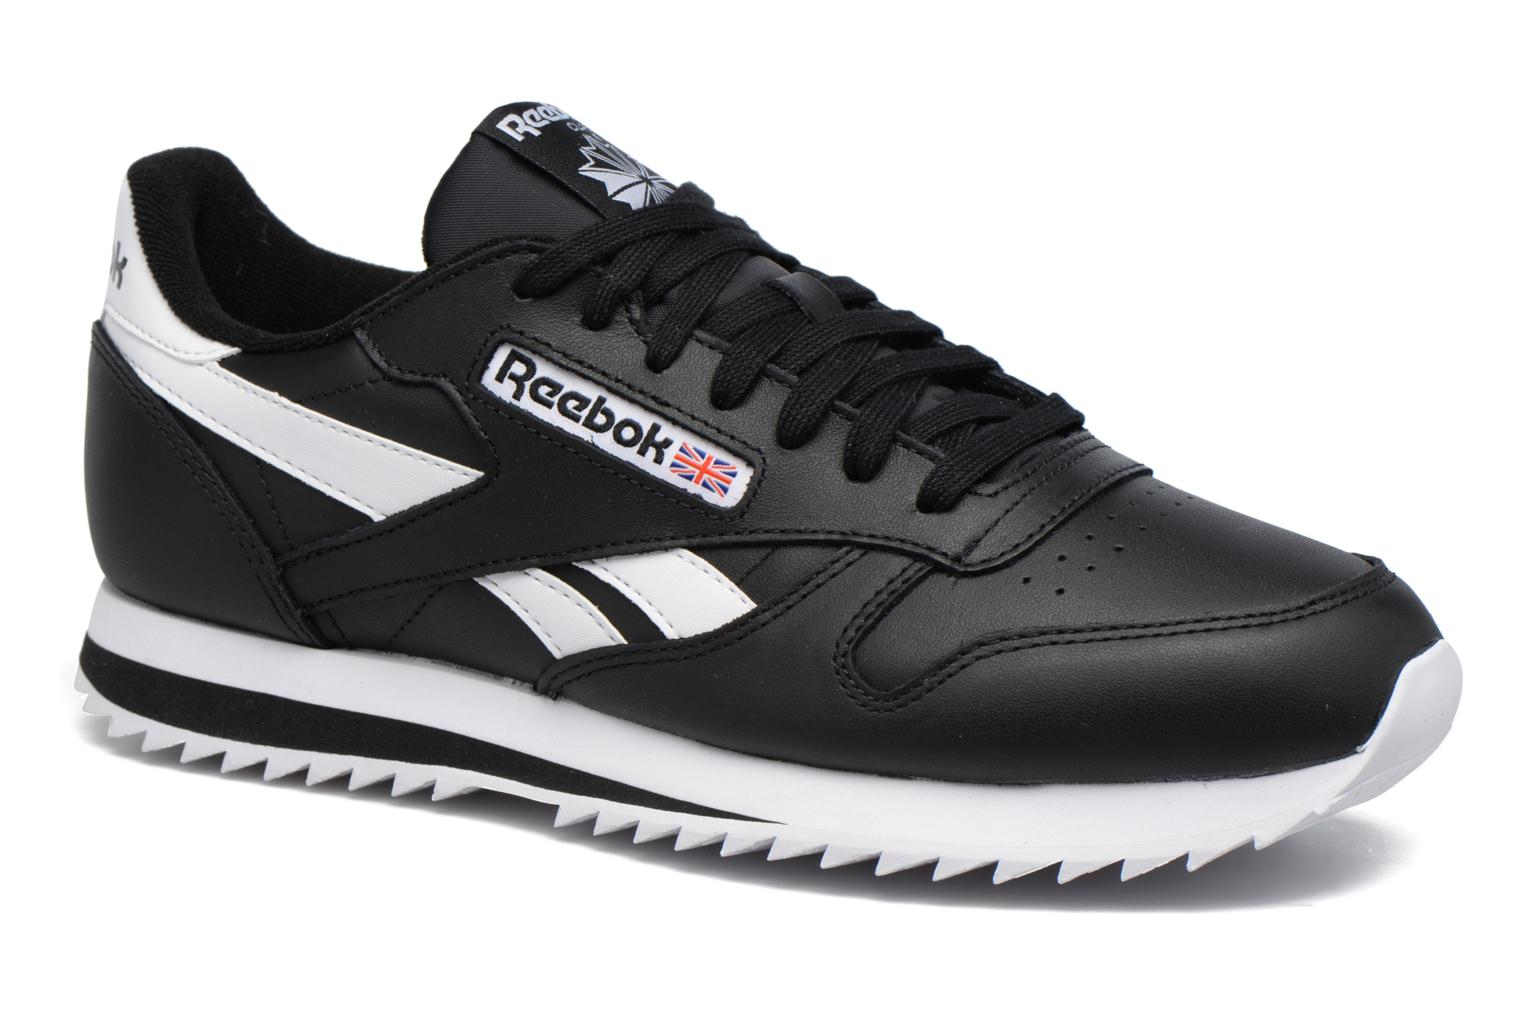 Baskets Reebok Cl Leather Ripple L Noir vue détail/paire